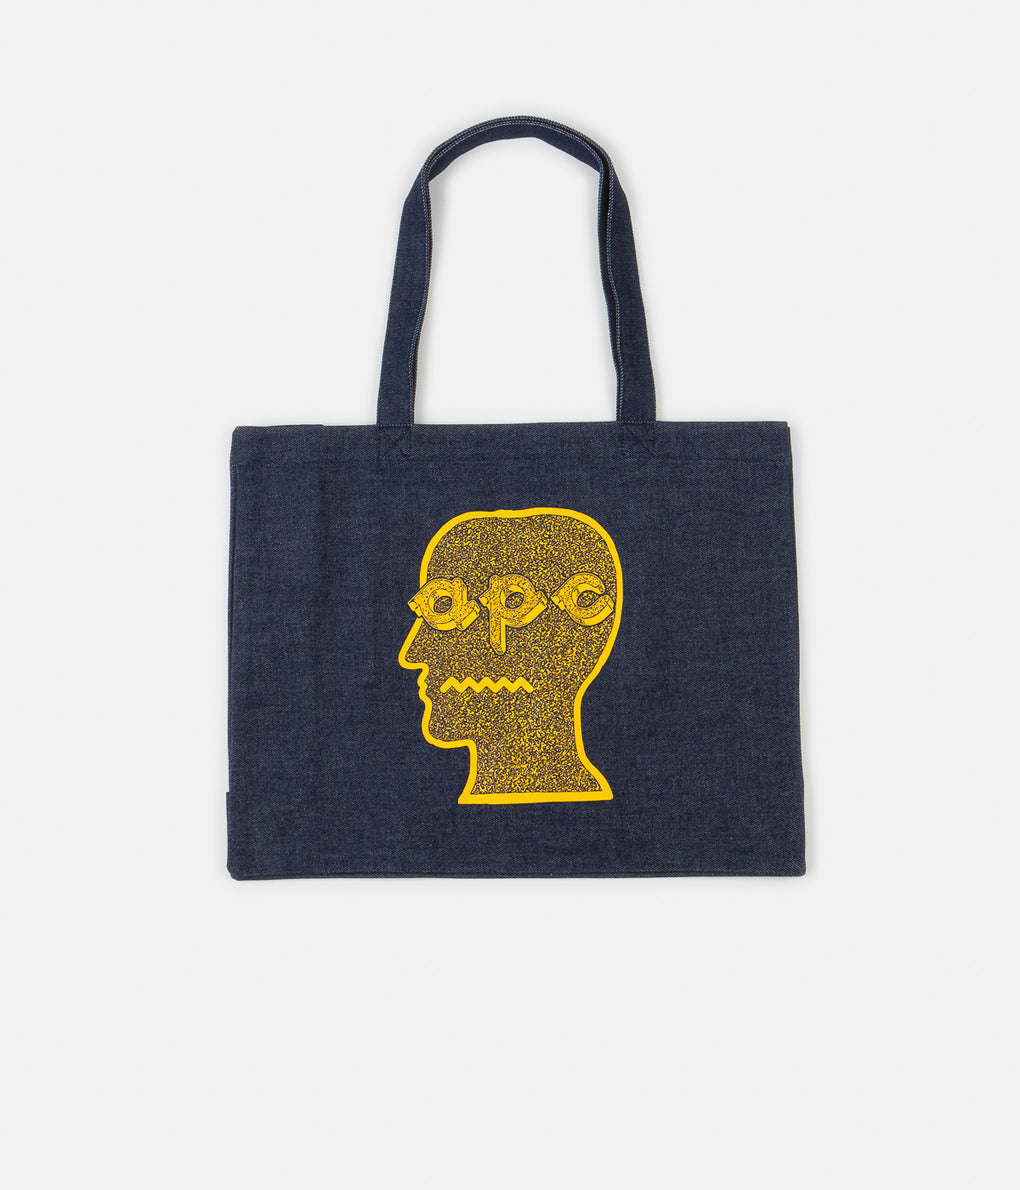 A.P.C. x Brain Dead Shopping Bag - Yellow